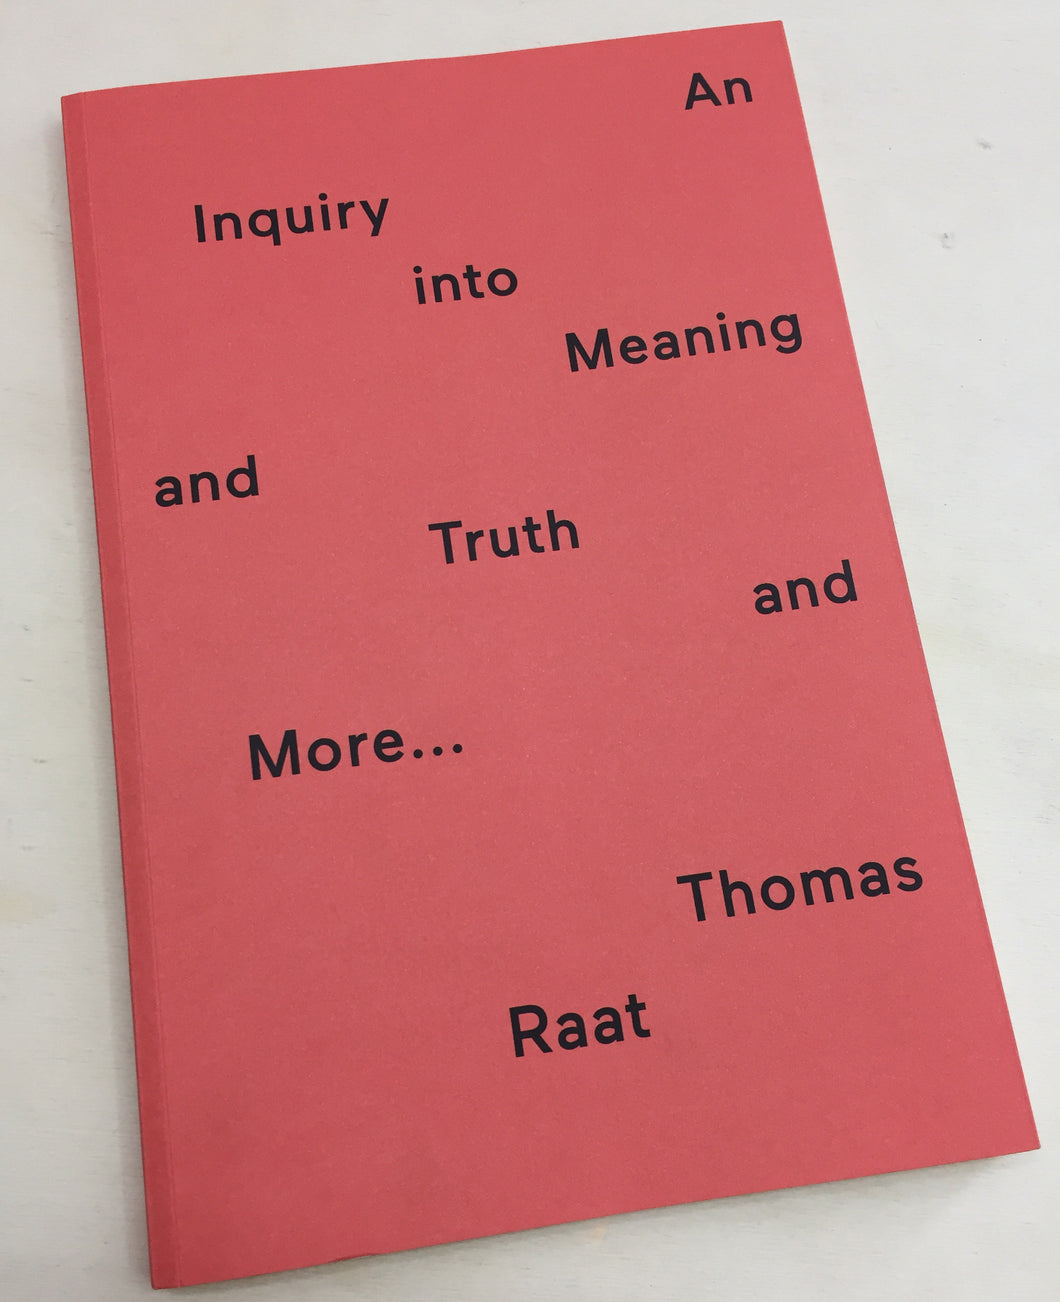 An Inquiry into Meaning and Truth  | Thomas Raat (Onomatopee)